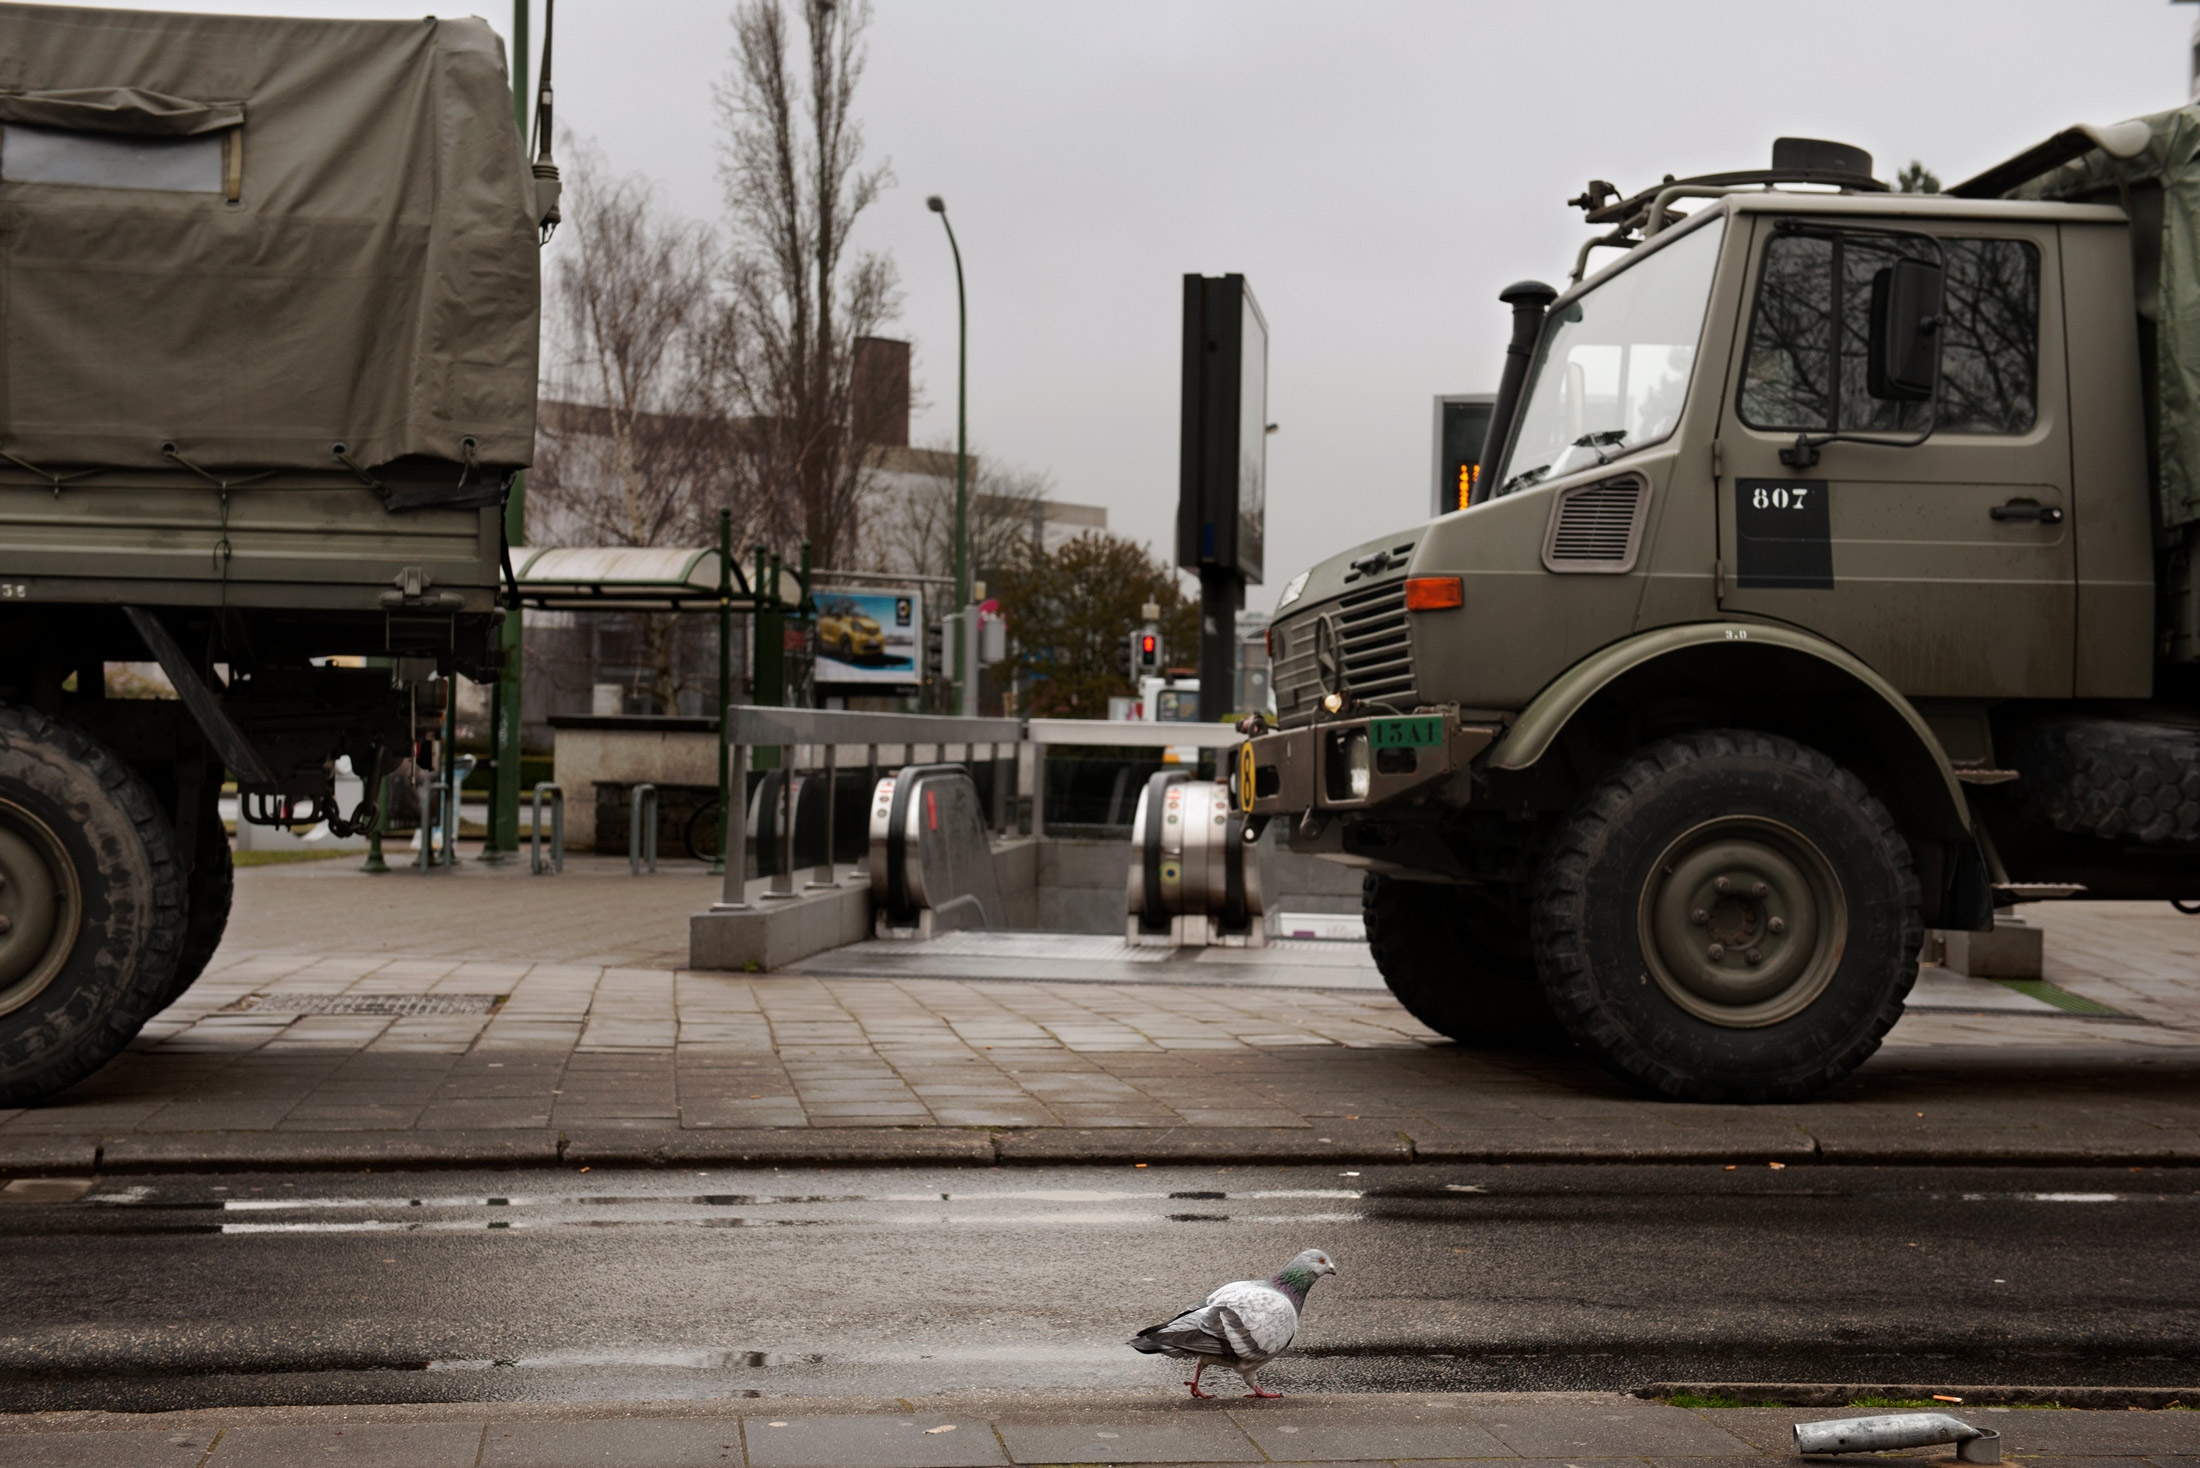 Art and Documentary Photography - Loading 21_BrusselsEnRoute_BramPenninckx.jpg